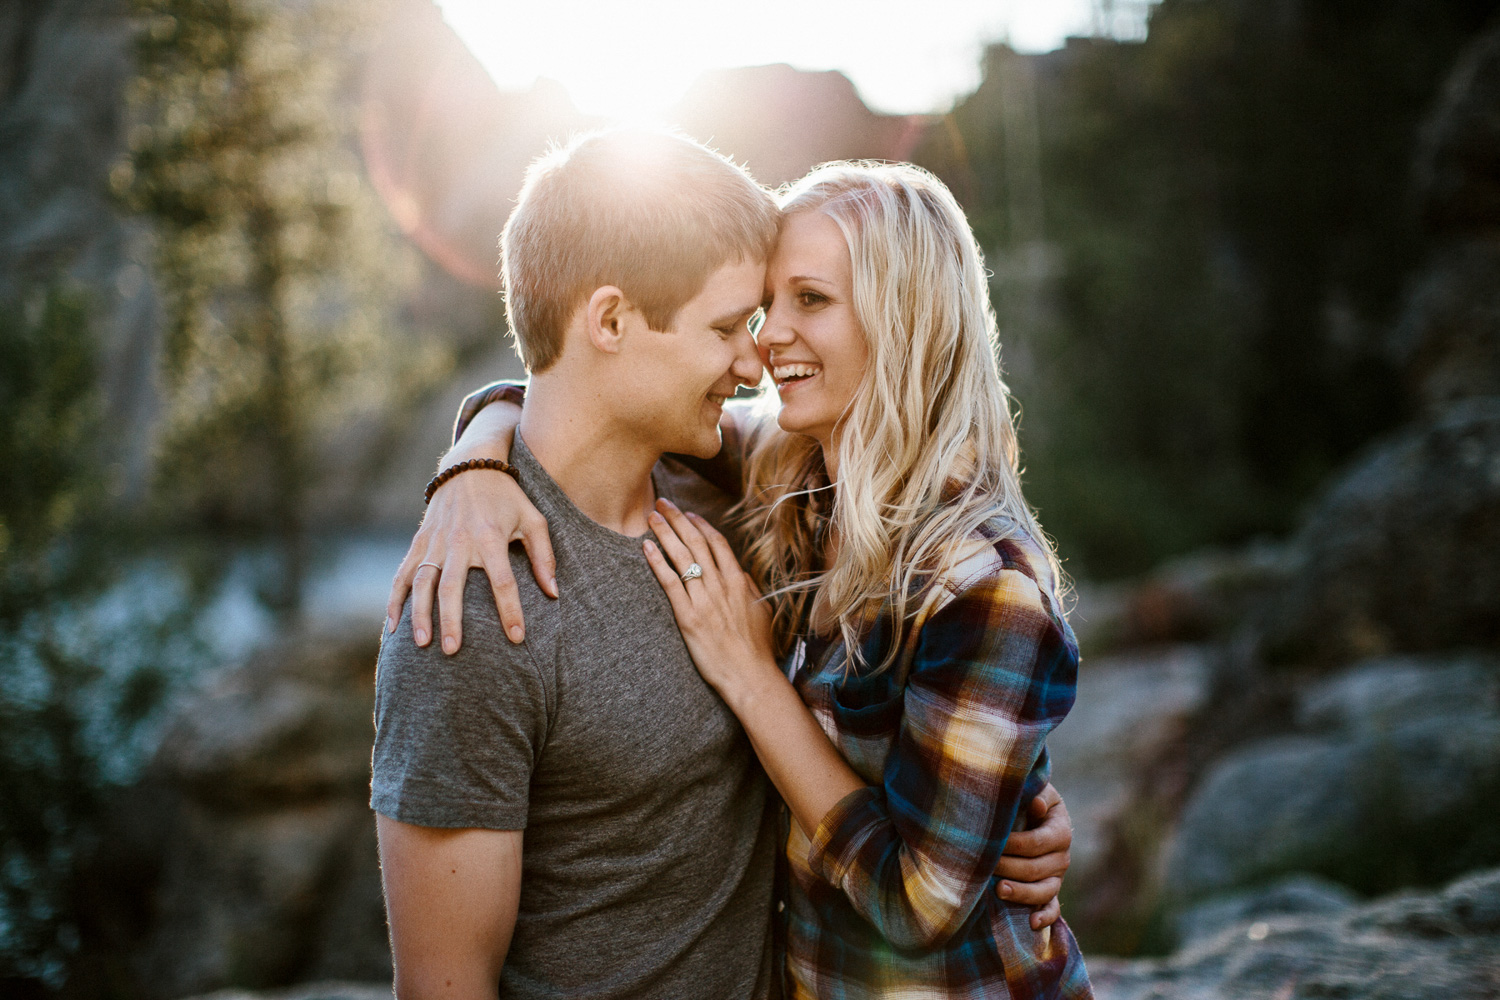 SiouxFalls_BlackHills_Adventure_Engagement_Wedding_Photographer_72.jpg